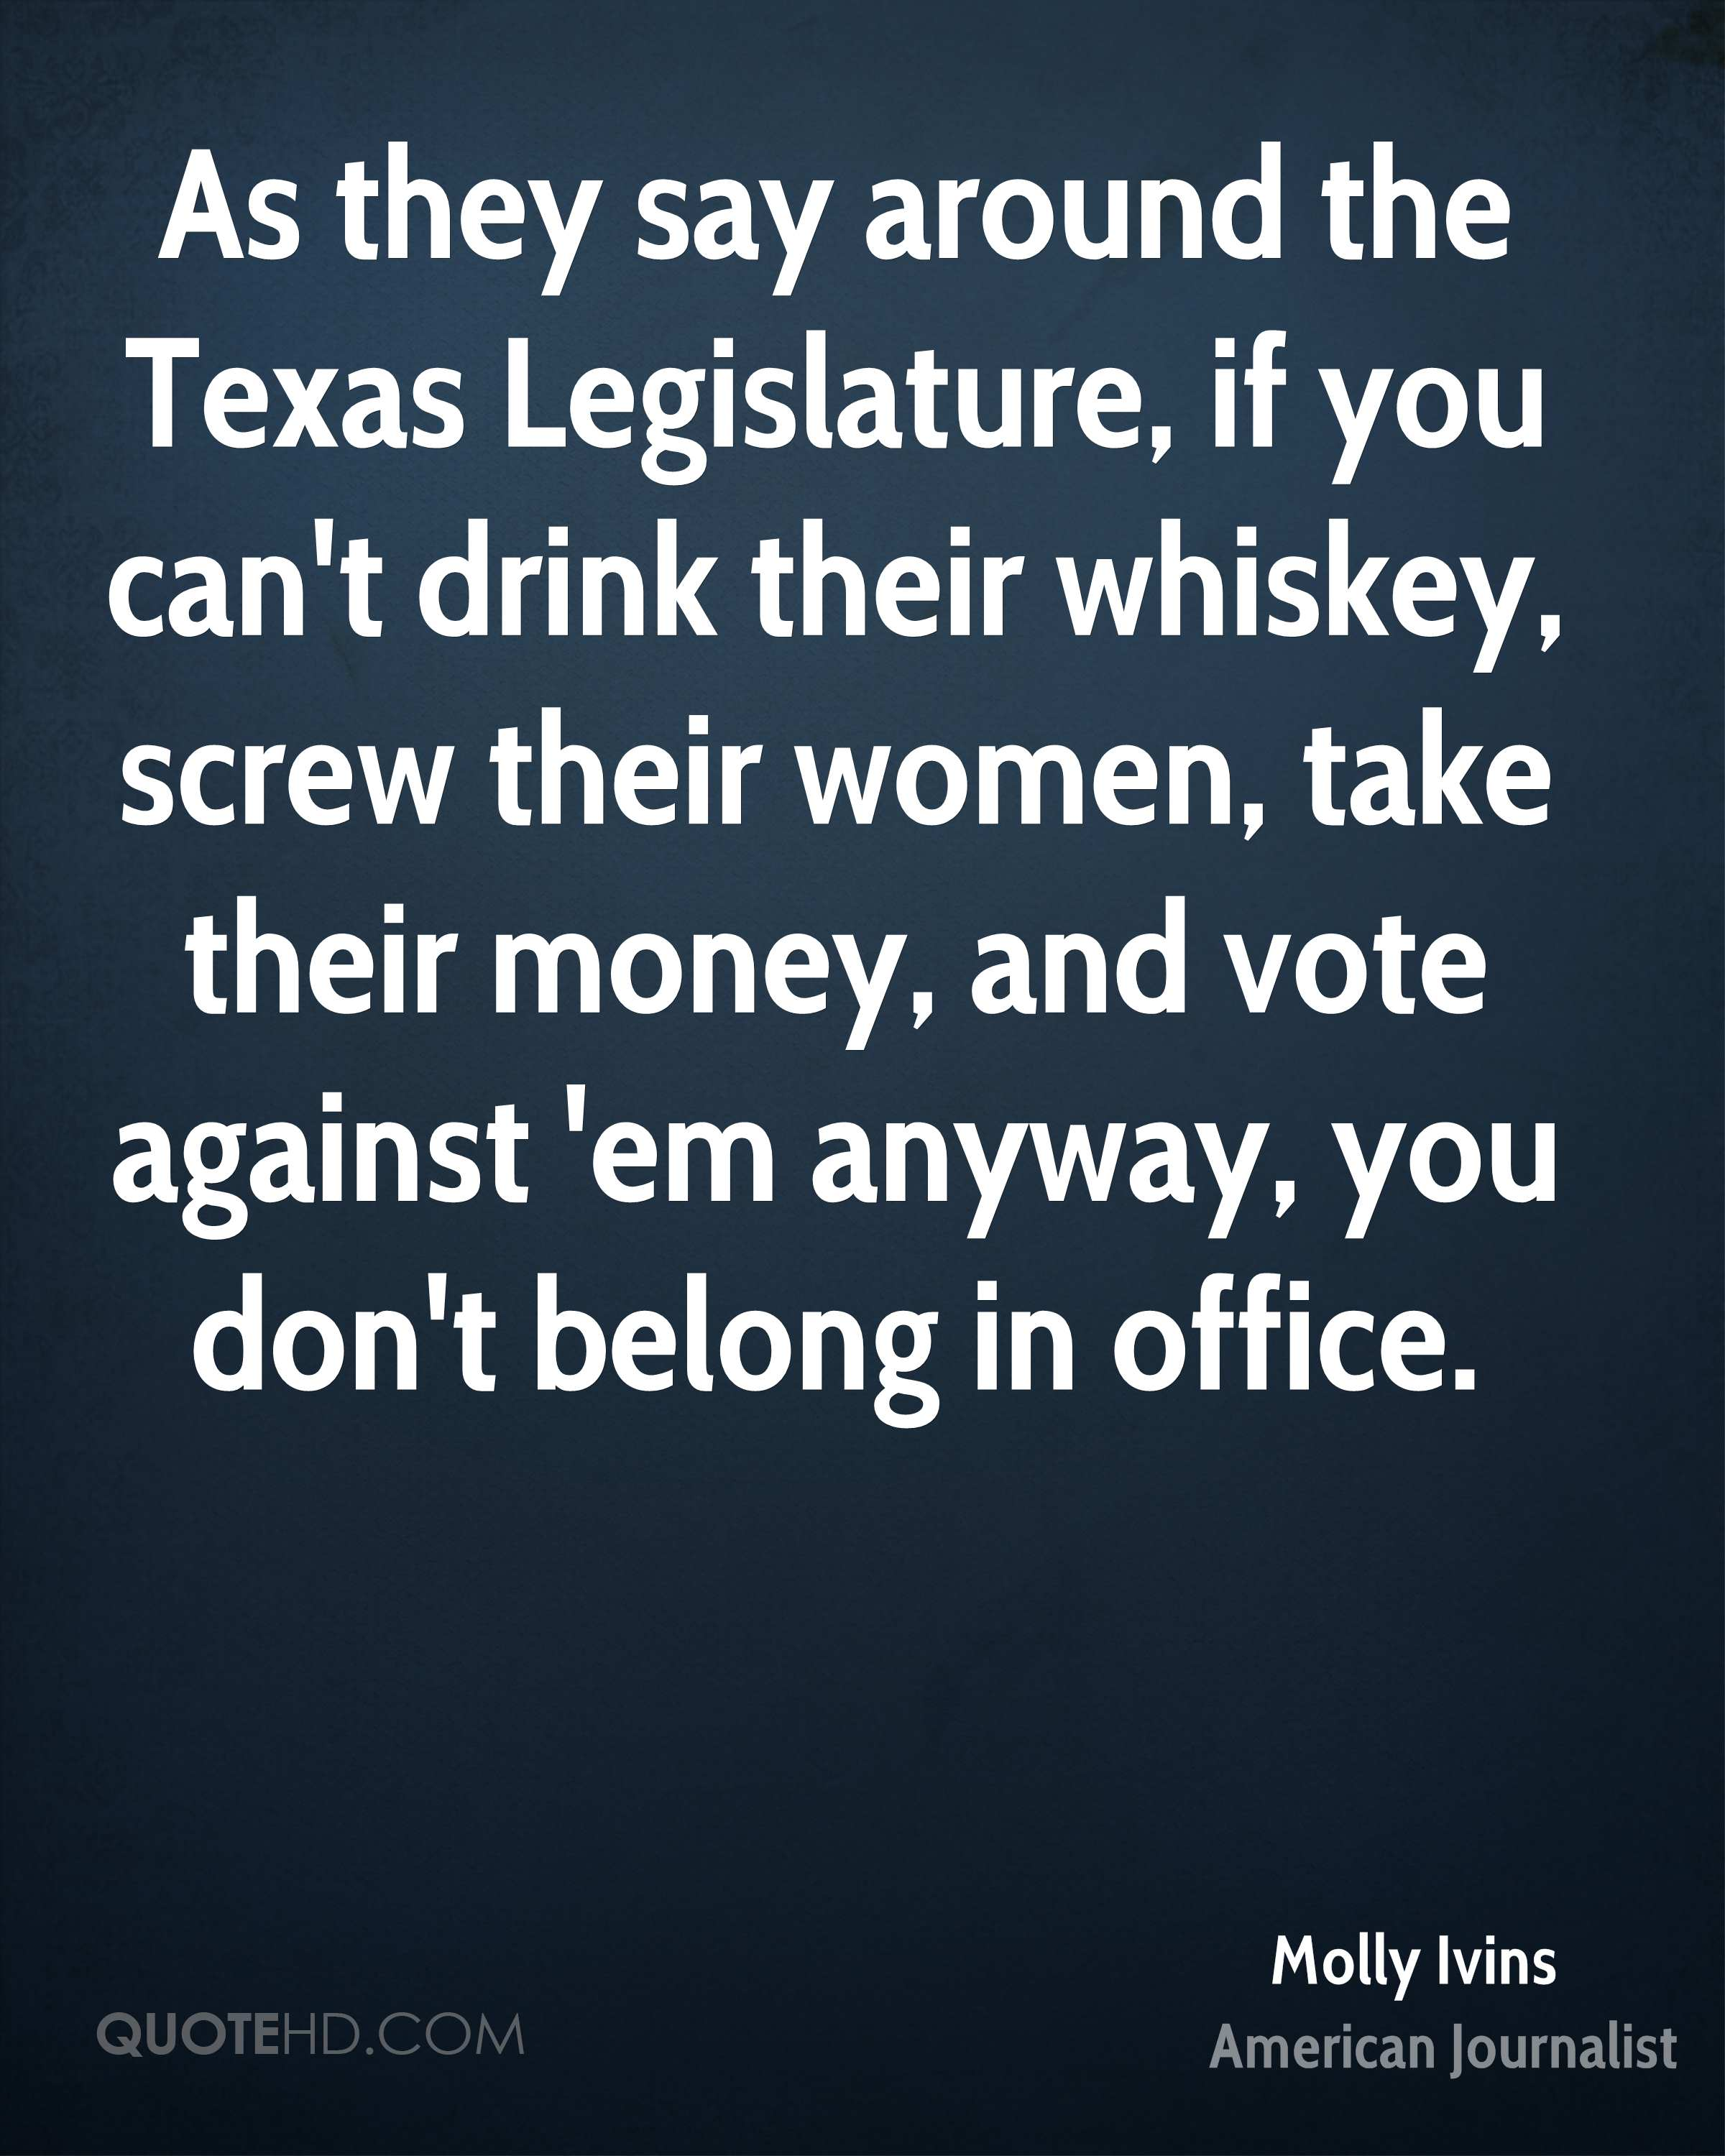 As they say around the Texas Legislature, if you can't drink their whiskey, screw their women, take their money, and vote against 'em anyway, you don't belong in office.